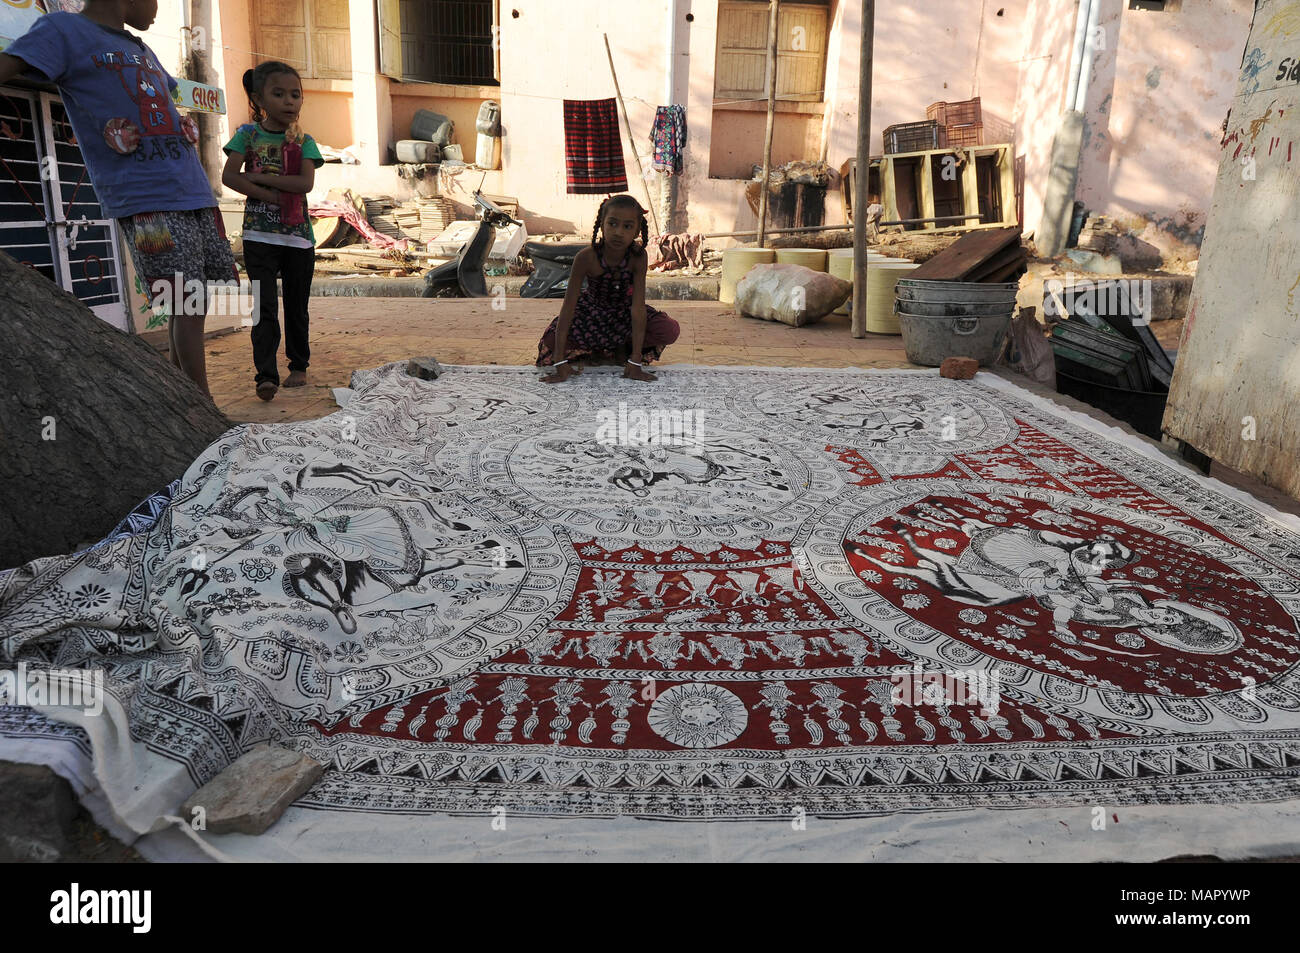 Mata ki Pachedi, the Cloth of the Mother Goddess, shrine cloth hand painted in the streets by the Vaghari community, Ahmedabad, Gujarat, India, Asia - Stock Image